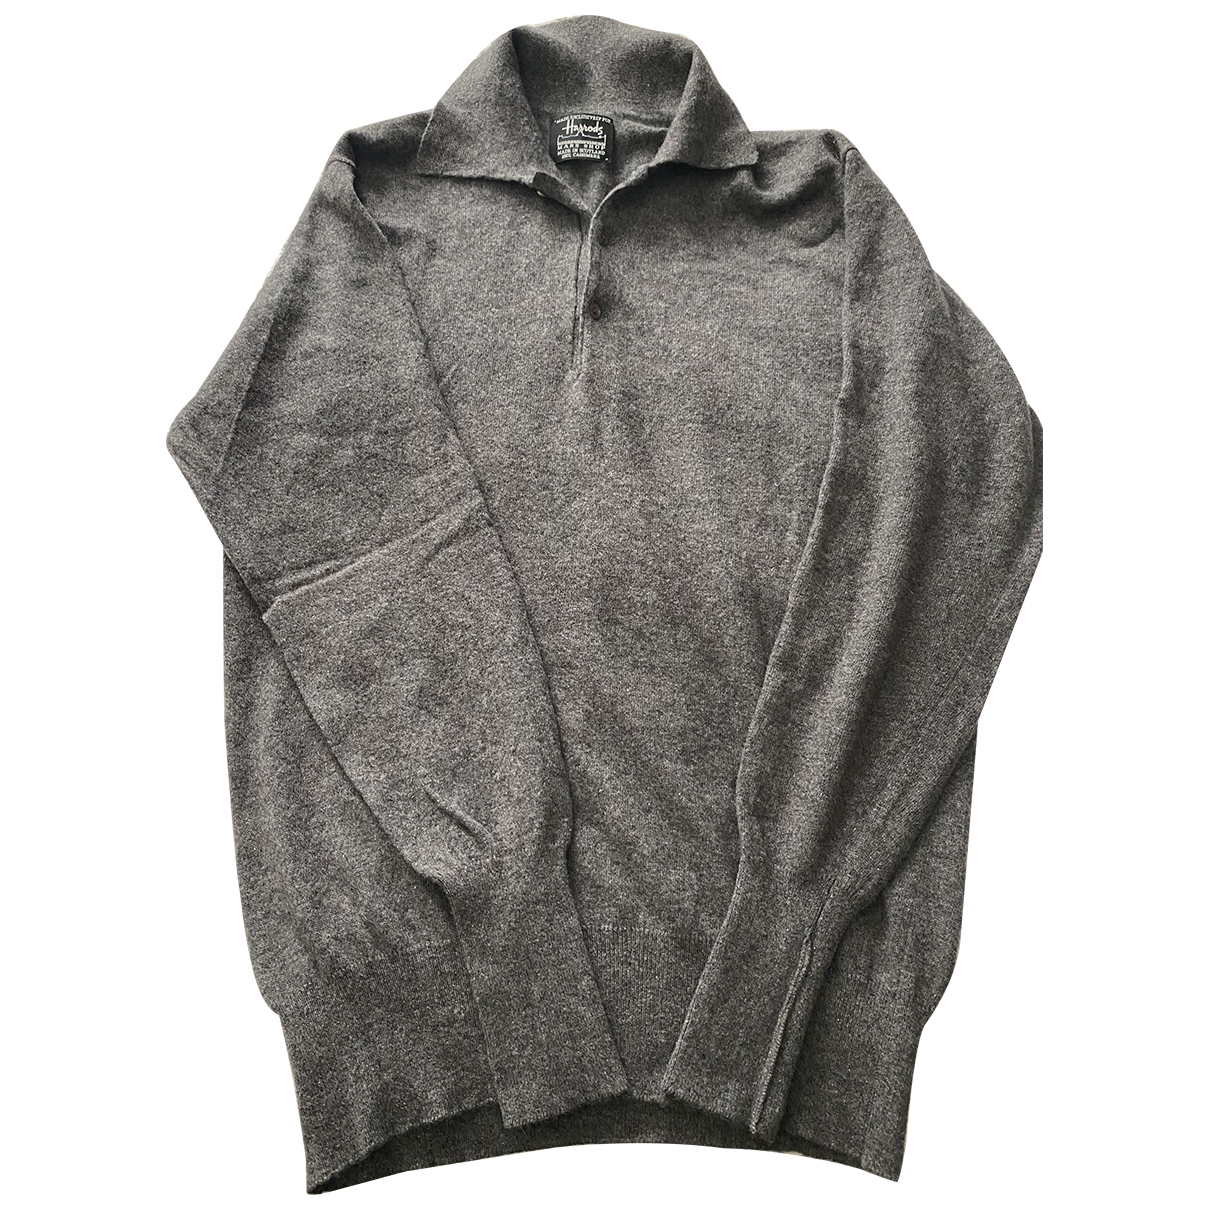 Harrods \N Grey Cashmere Knitwear & Sweatshirts for Men M International